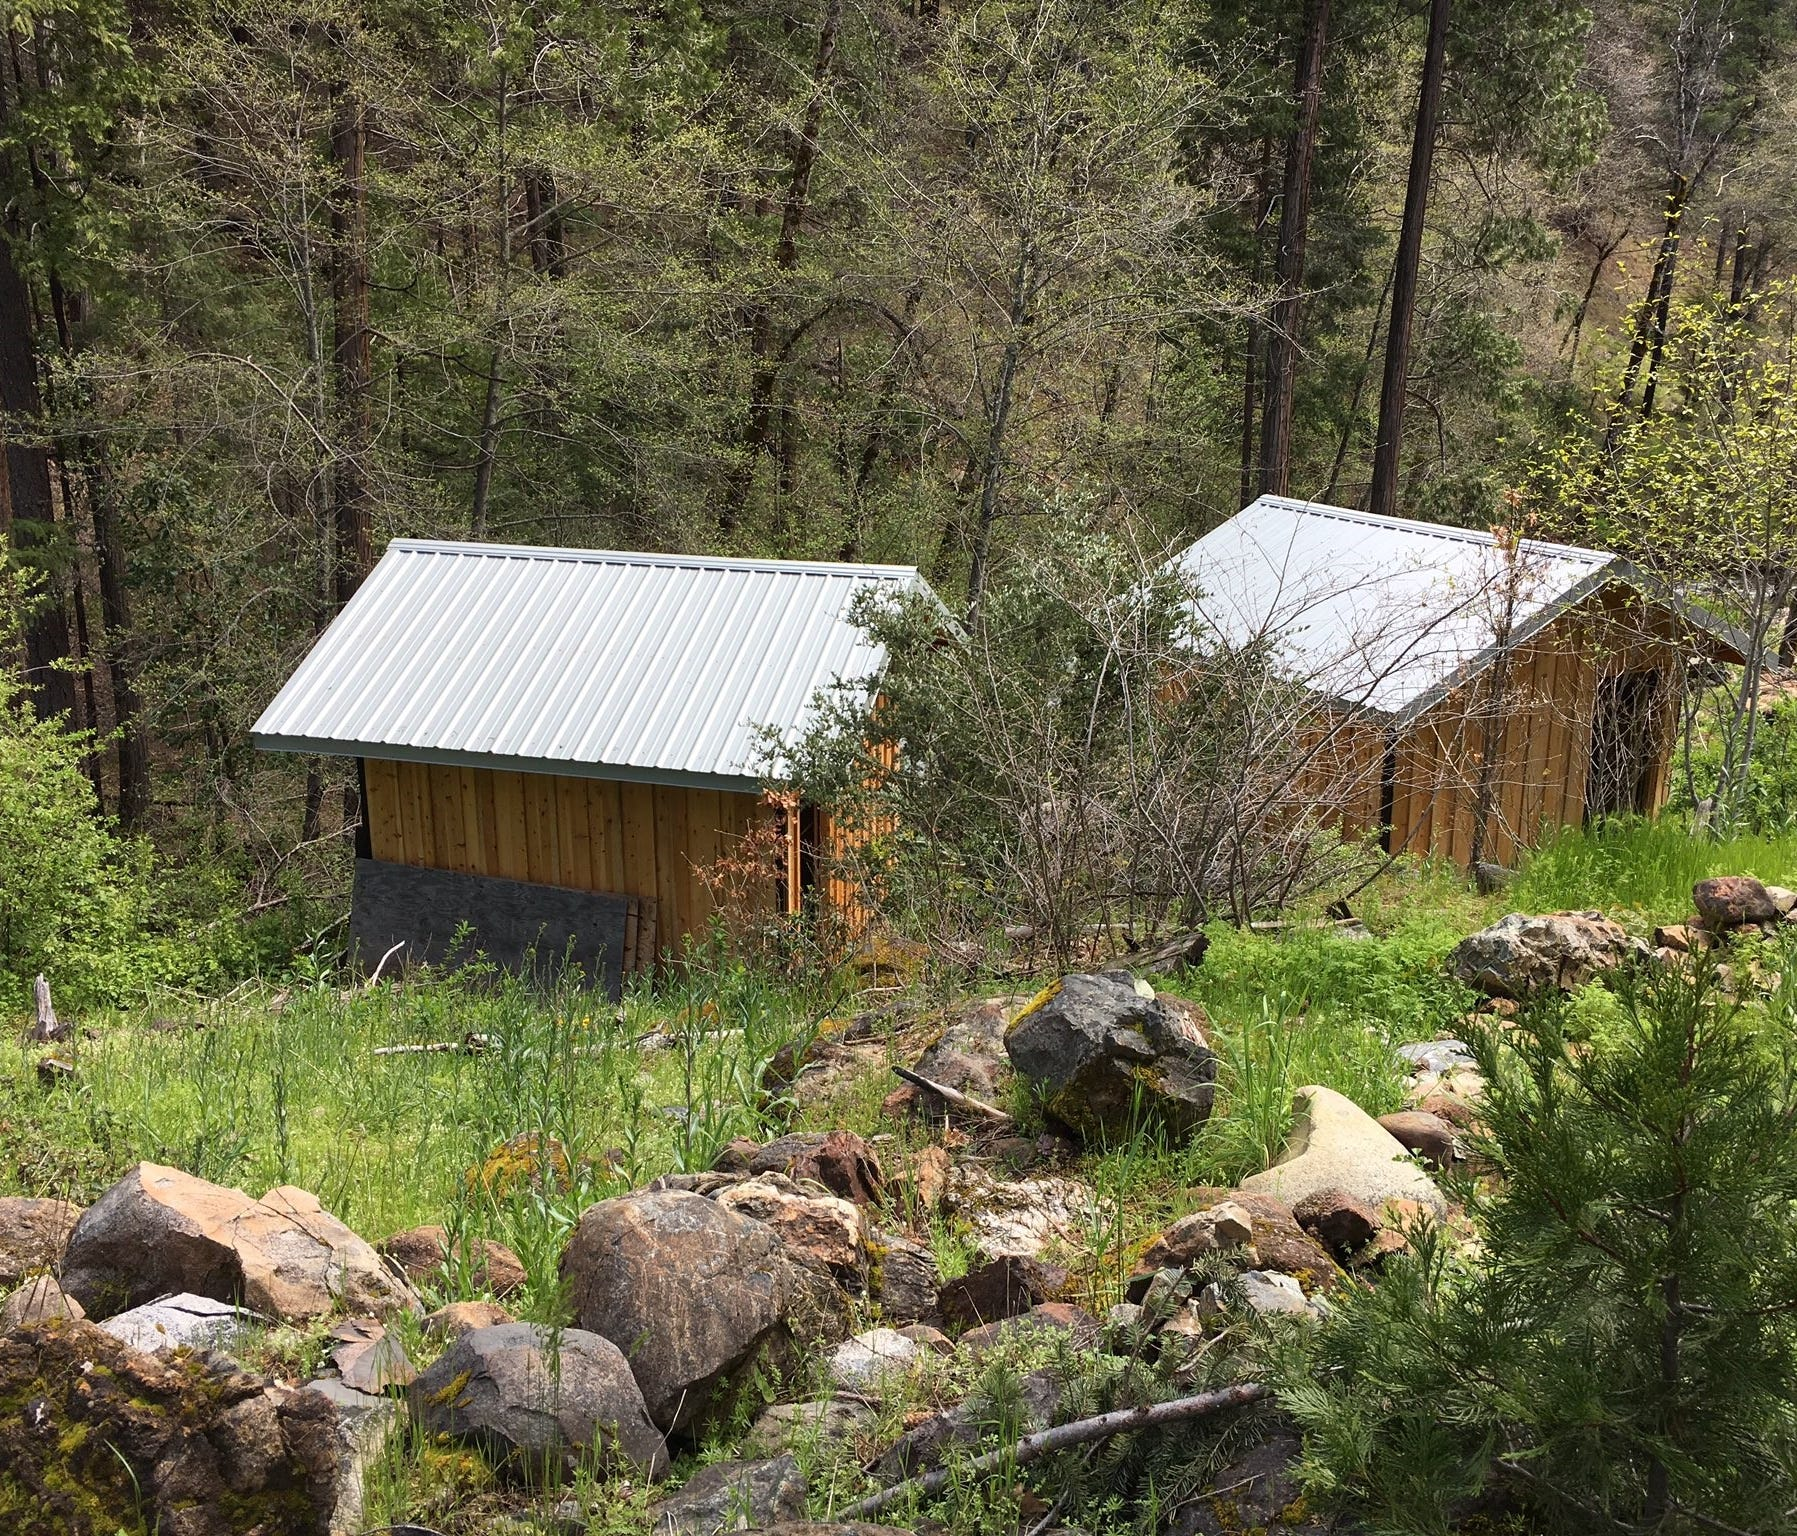 A cabin where authorities say Tad Cummins held Elizabeth Thomas for more than a week in rural Northern California.